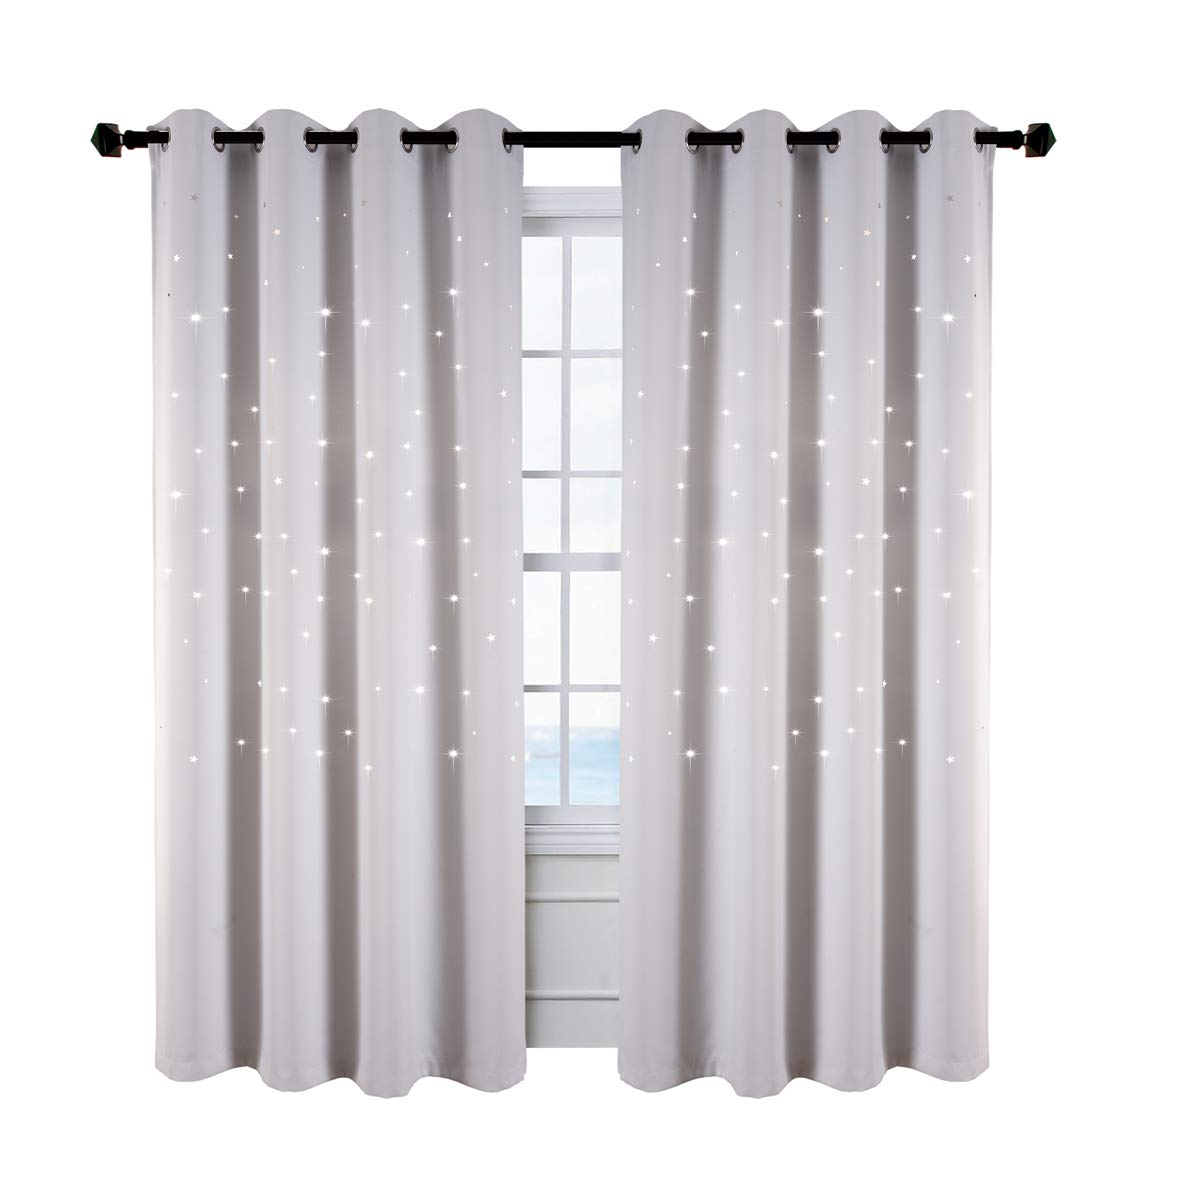 Perfect for/Baby Nursery Star Wars Themed Kids Room Blackout Curtains Kotile 2 Panels 63 Inch Length Grommet Thick and Soft Room Darkening Curtain with Laser Cutting Stars Royal Blue Ketaishi Textile